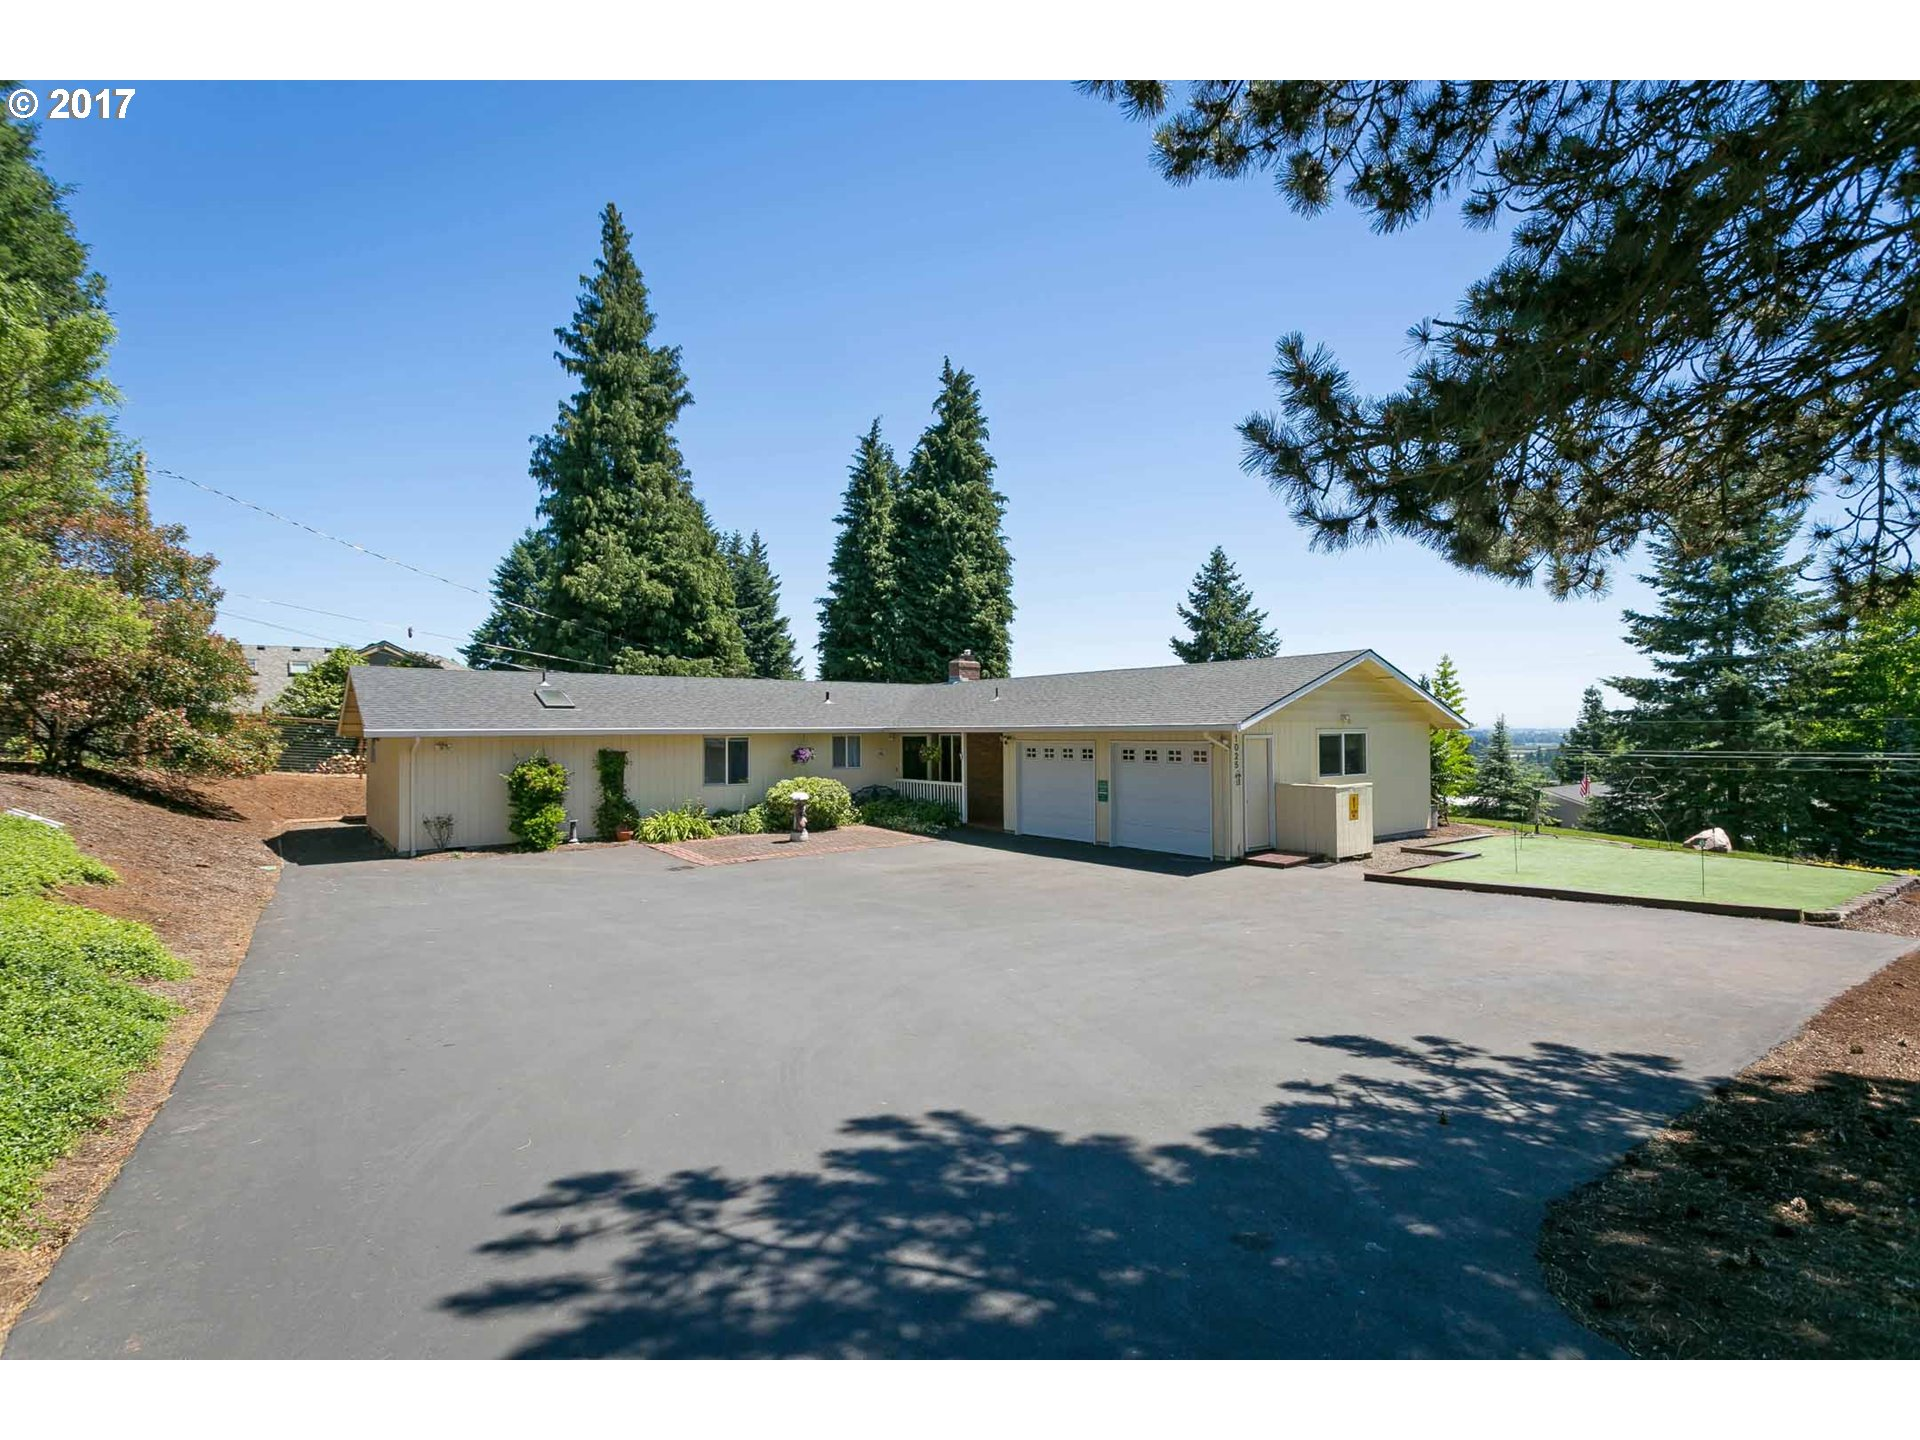 1025 SW RED HILLS DR, Dundee, OR 97115